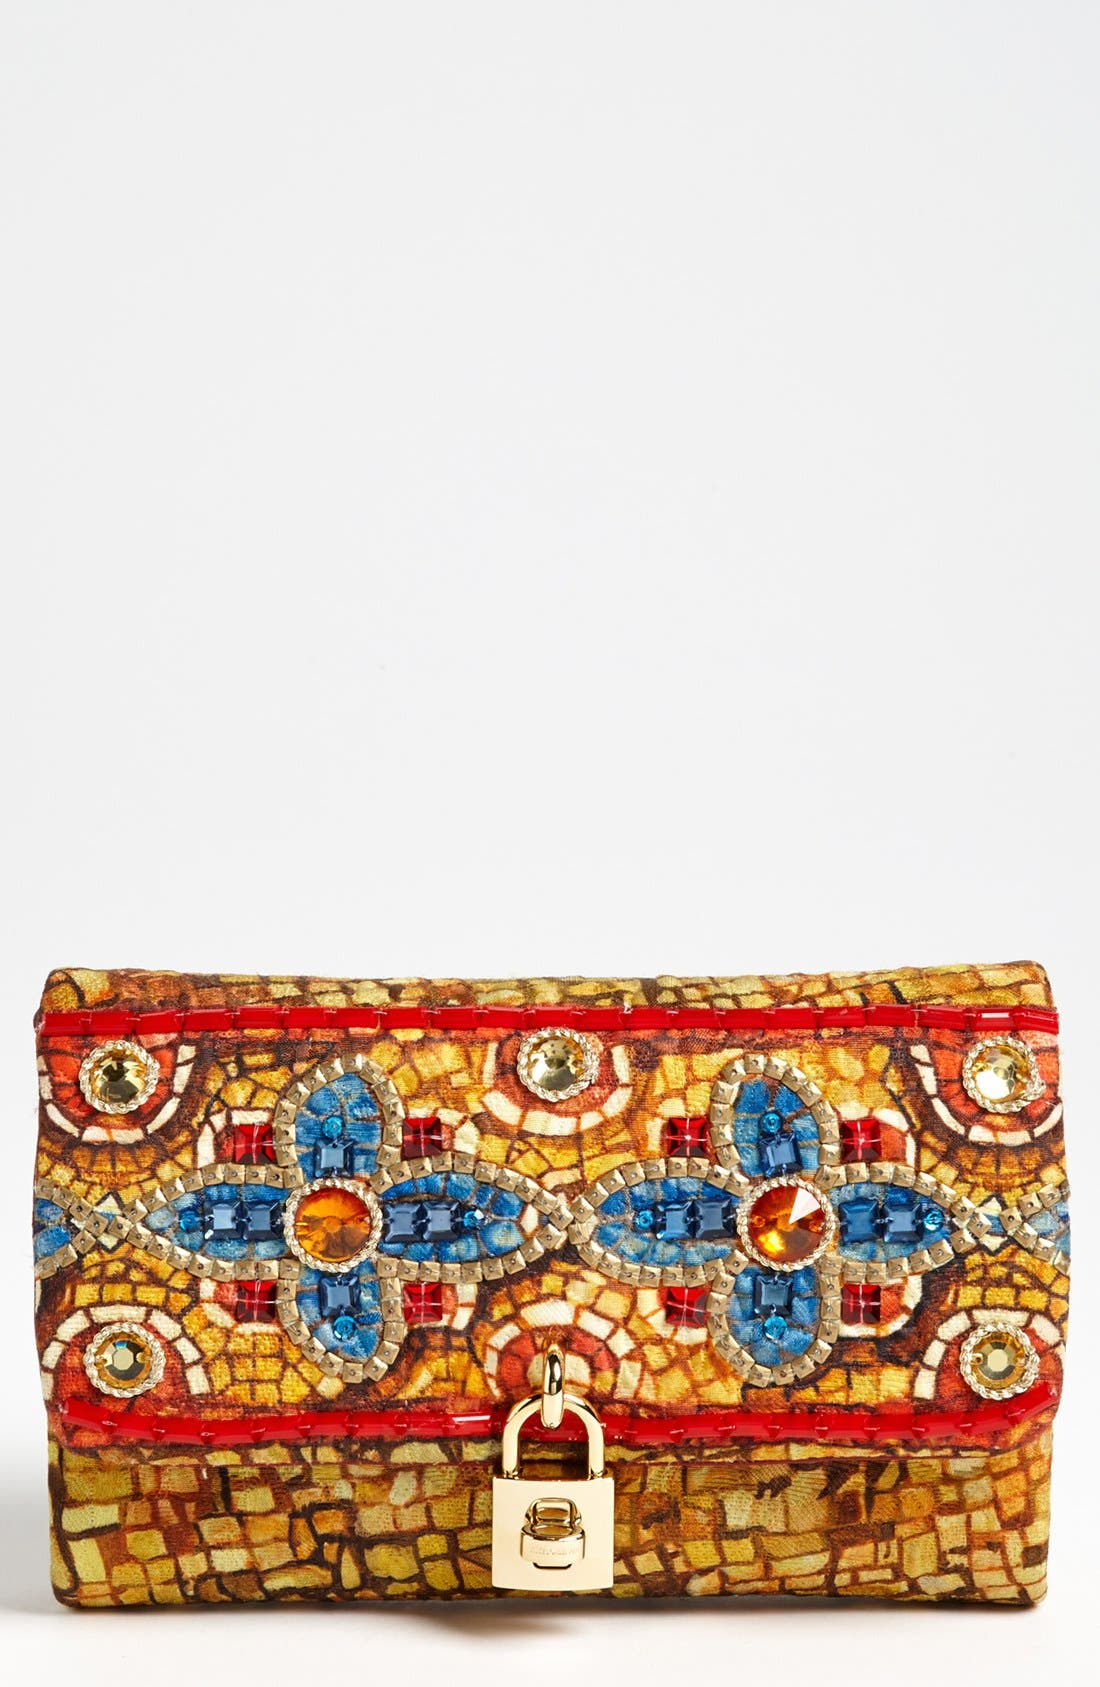 Alternate Image 1 Selected - Dolce&Gabbana 'Miss Dolce - Greek Mosaic' Shoulder Bag